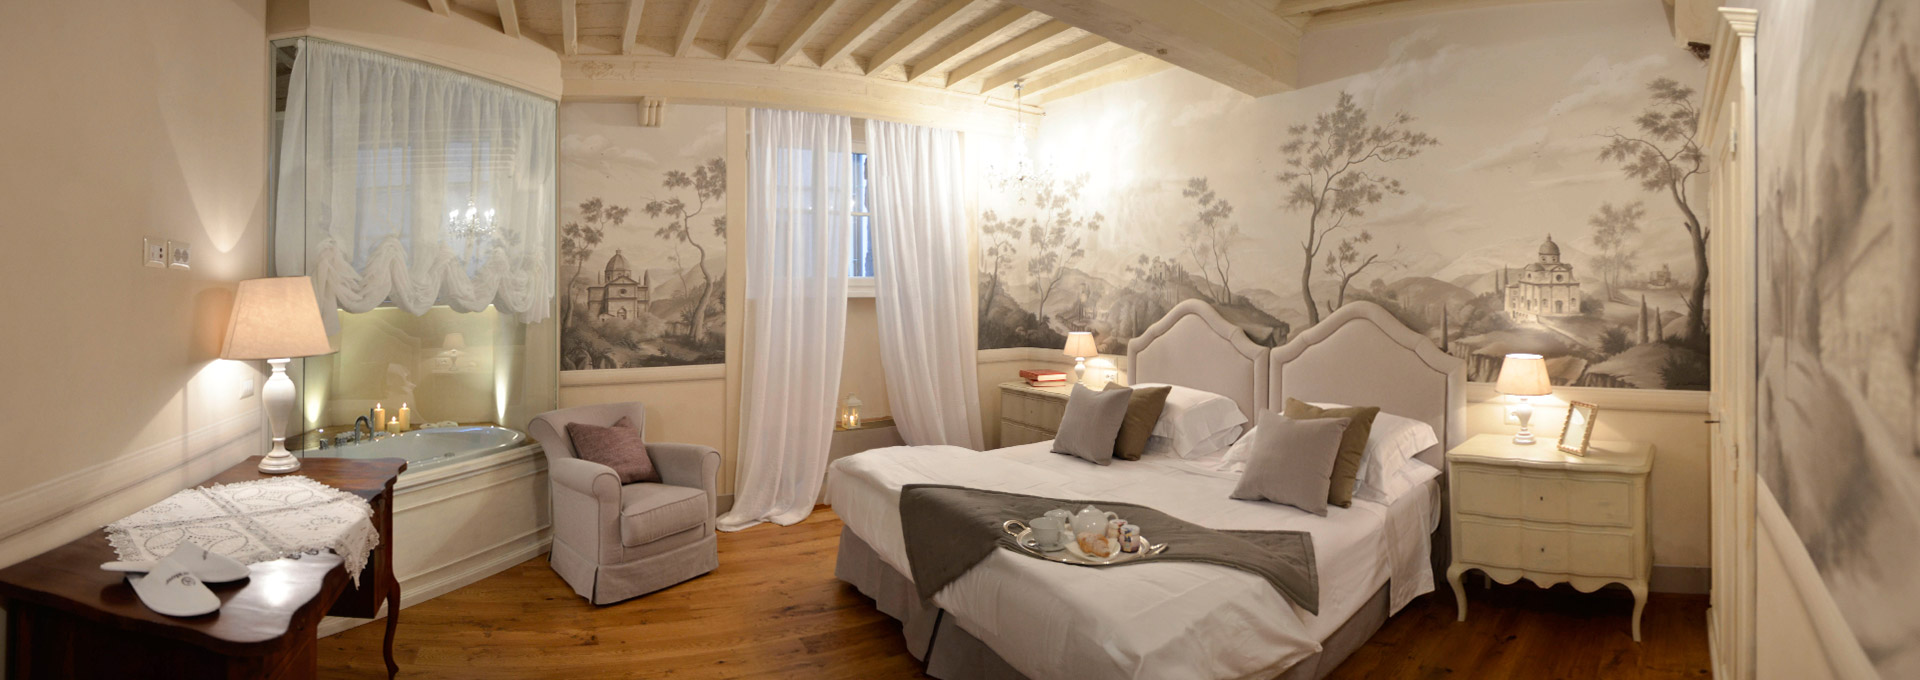 Bed and breakfast in centro storico a cortona con centro for A bed and breakfast